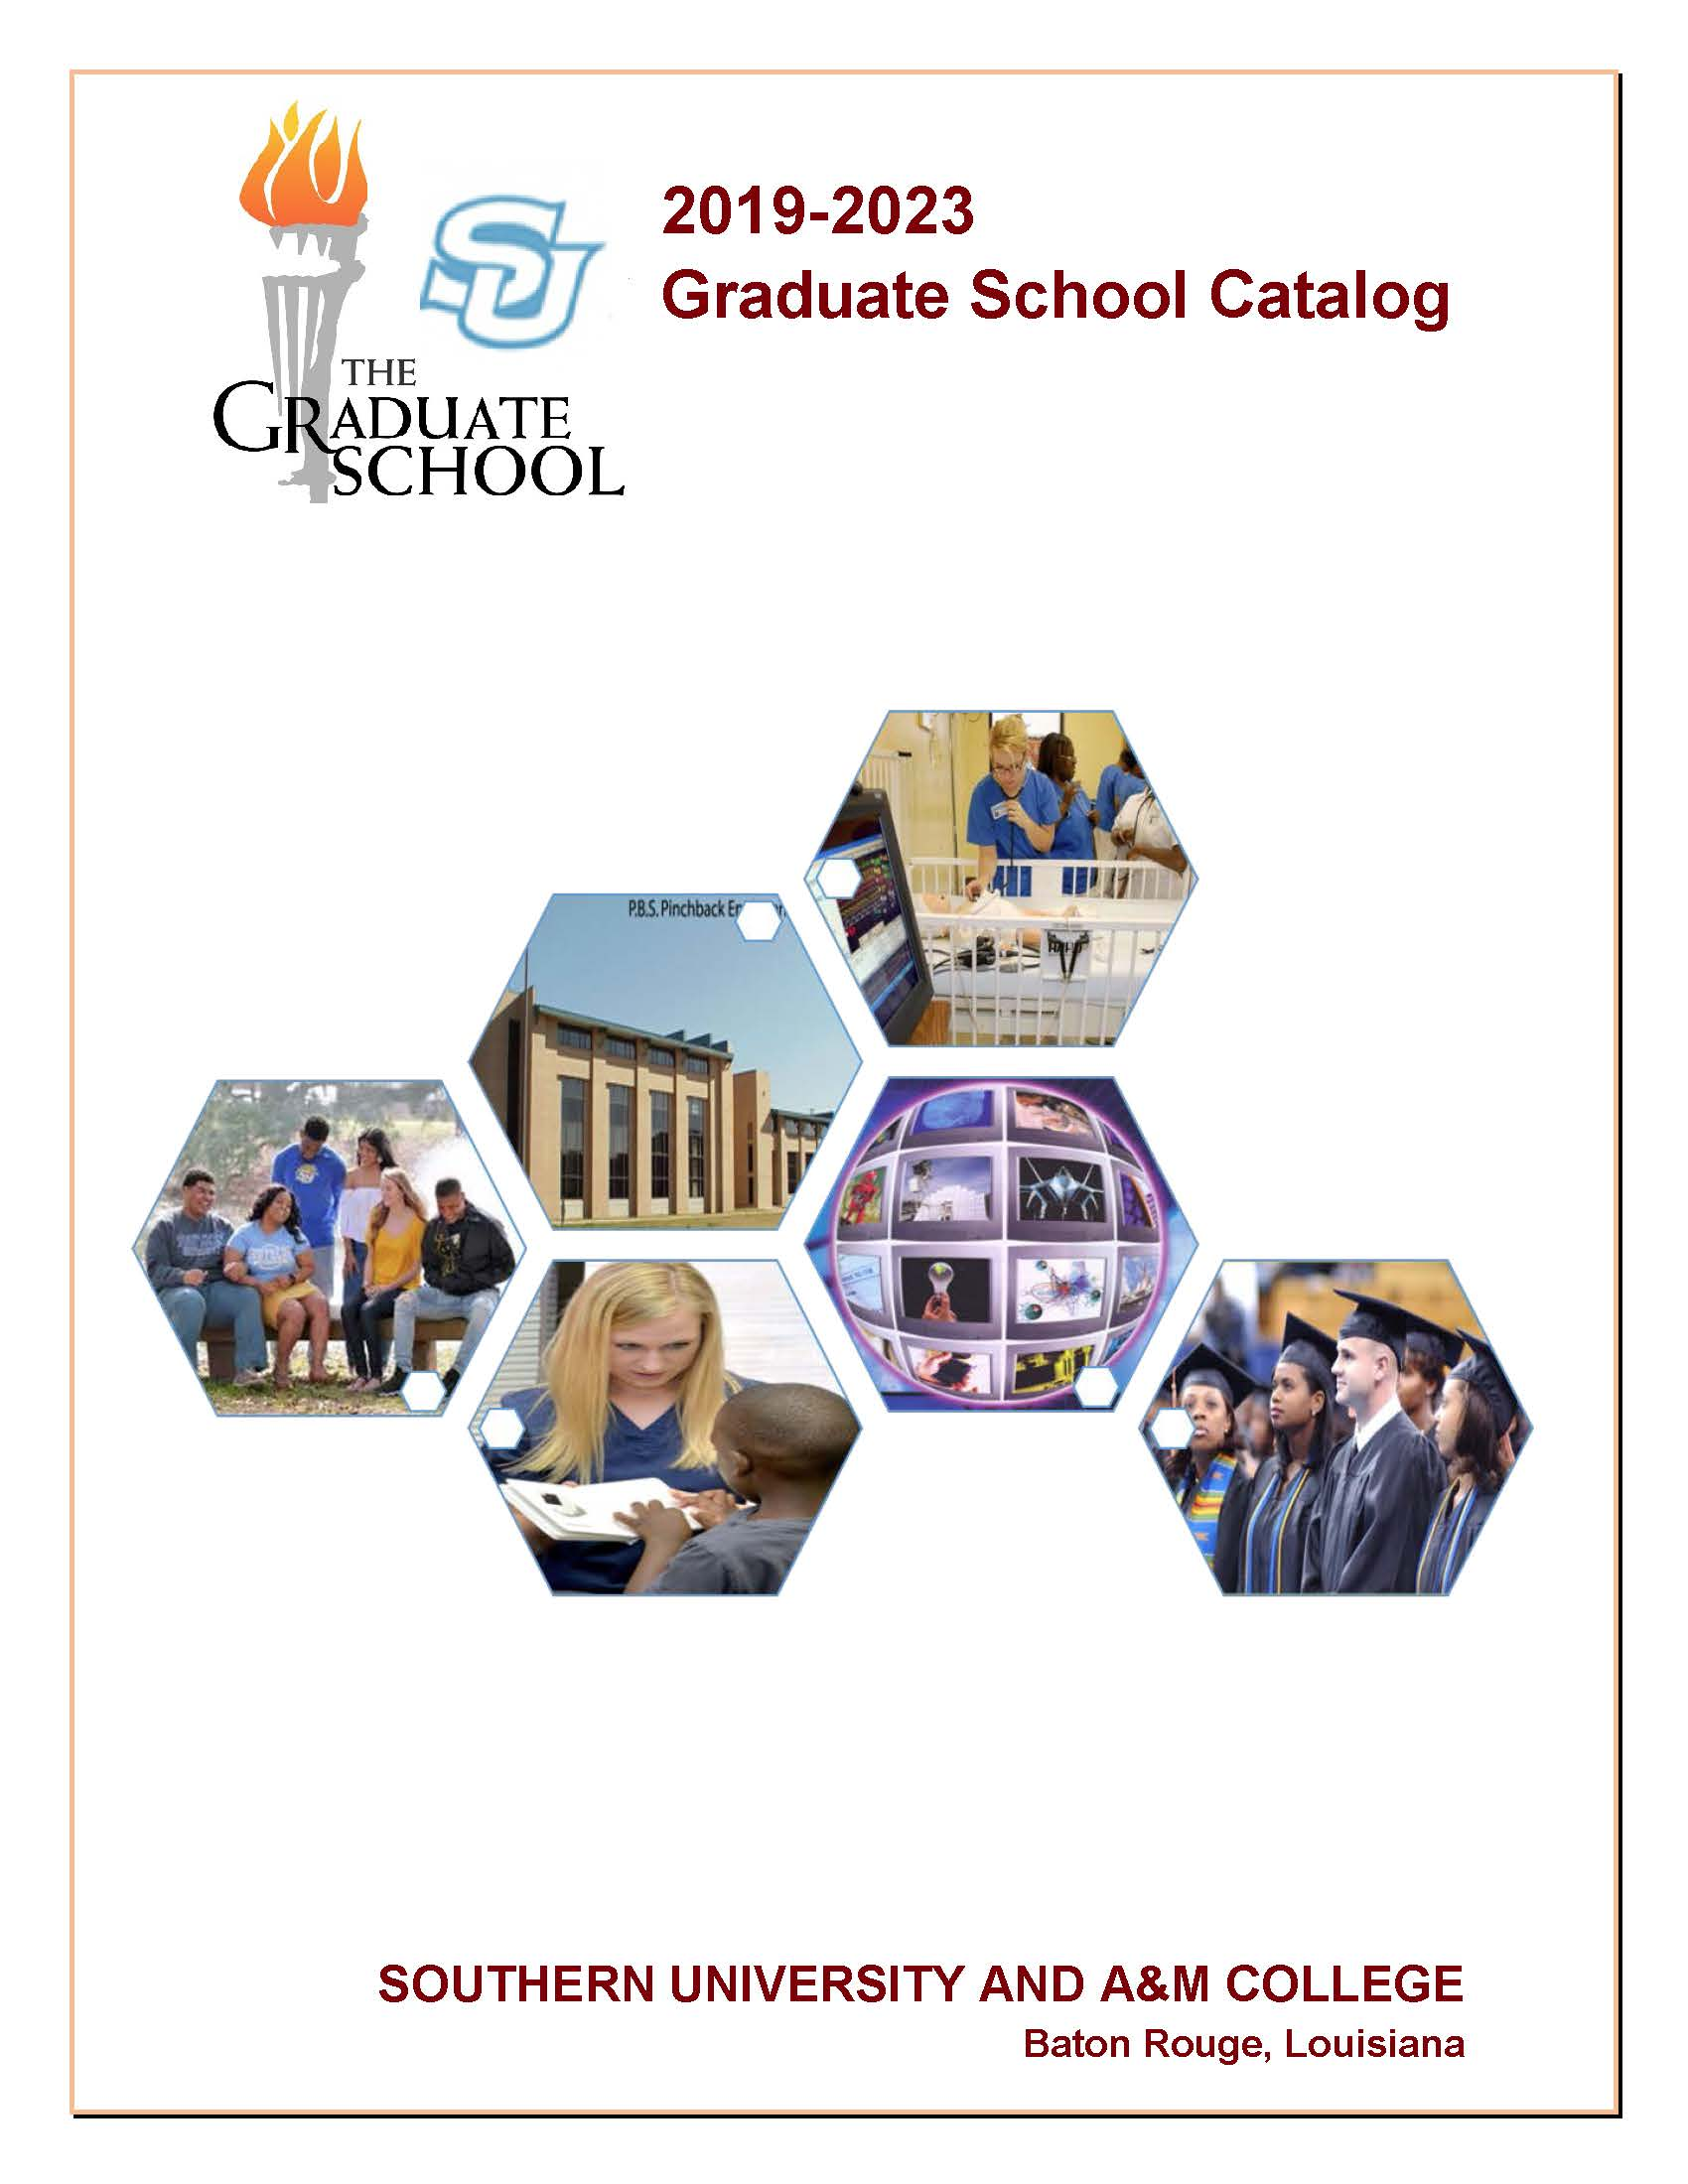 SUBR Catalogs | Southern University and A&M College